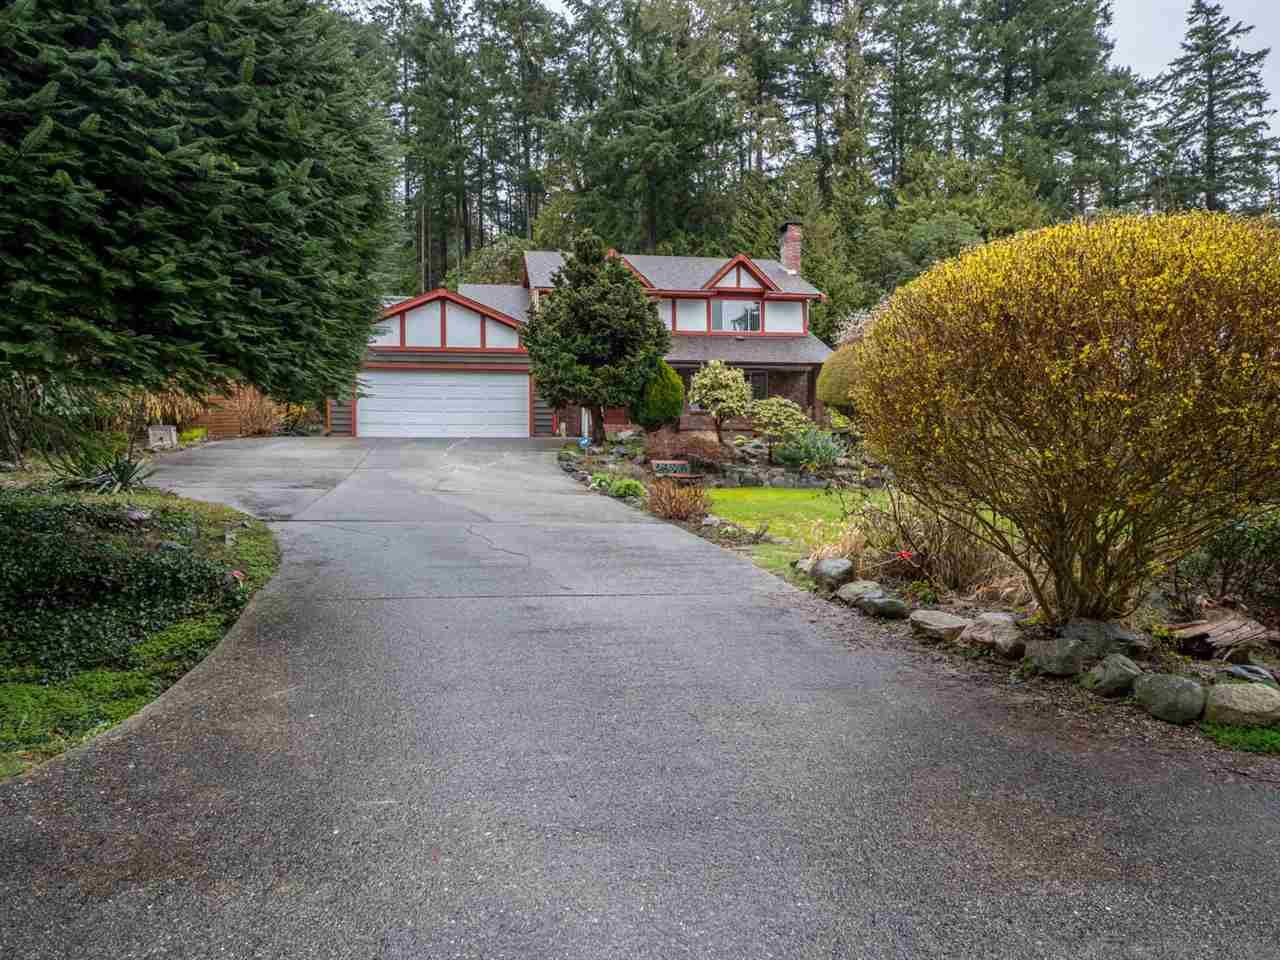 Main Photo: 7098 DALE Road in Sechelt: Sechelt District House for sale (Sunshine Coast)  : MLS®# R2251269